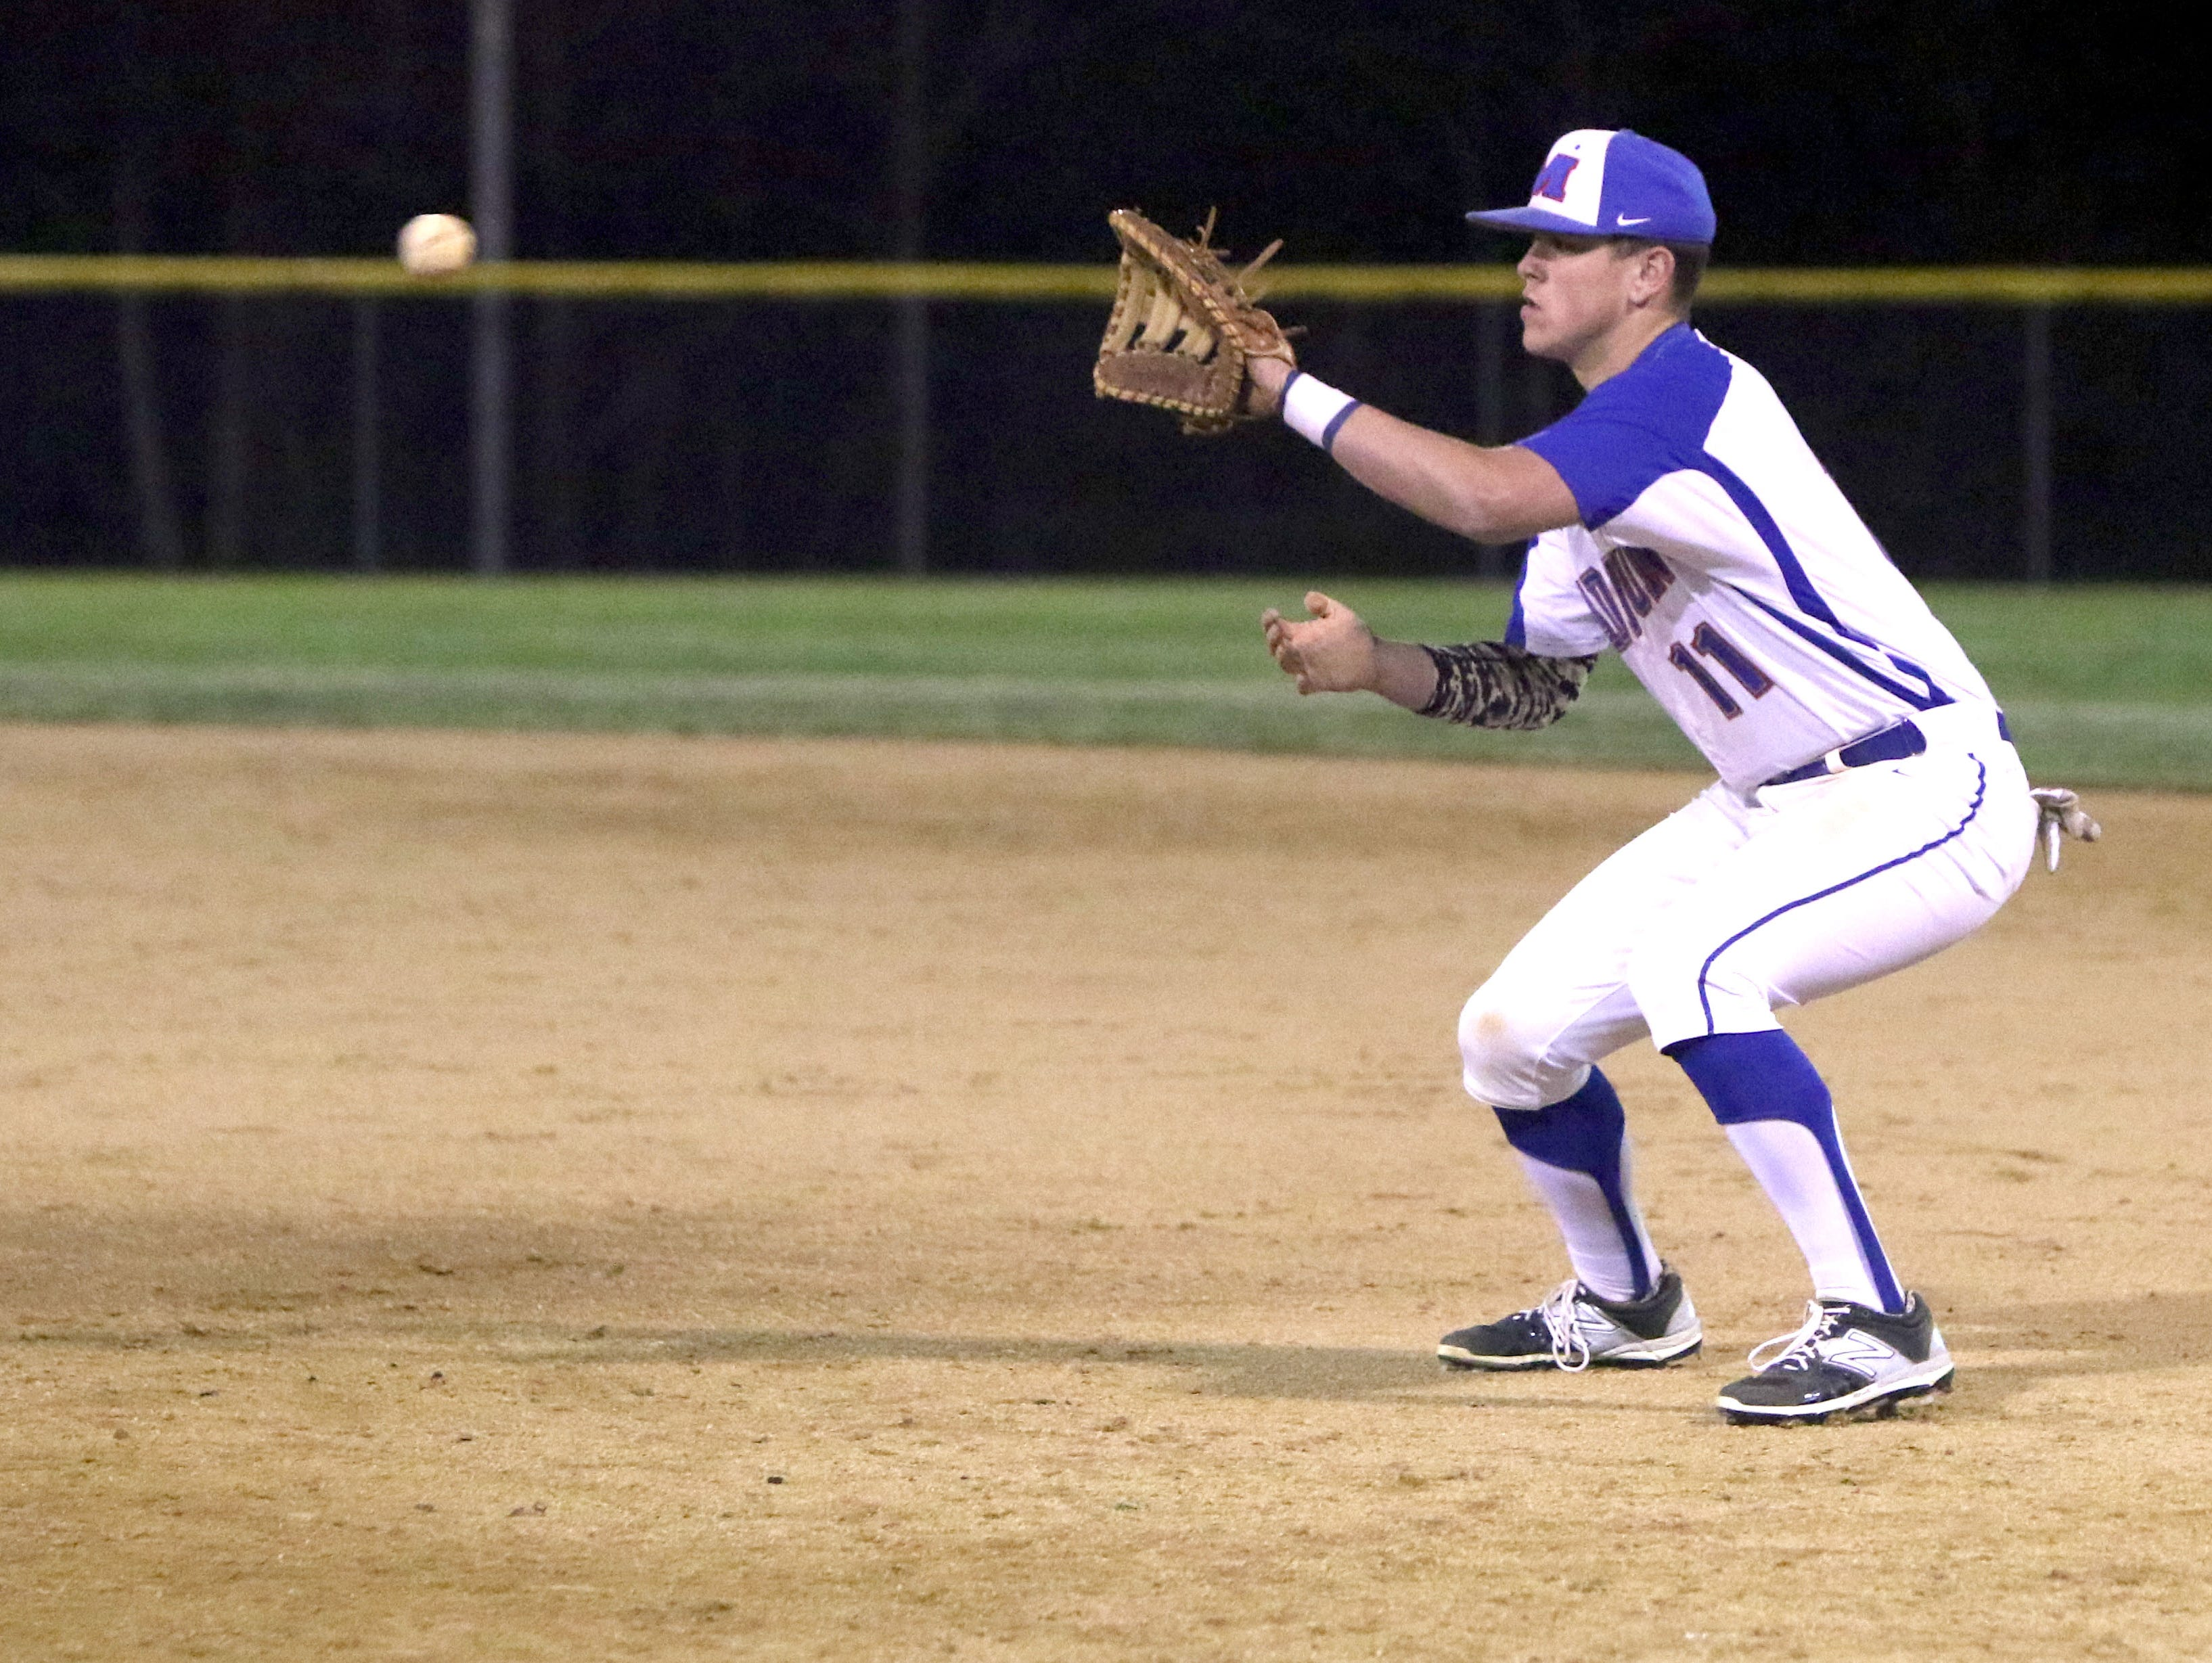 Madison first baseman Ty Roberts waits to make a catch on Monday in Marshall.